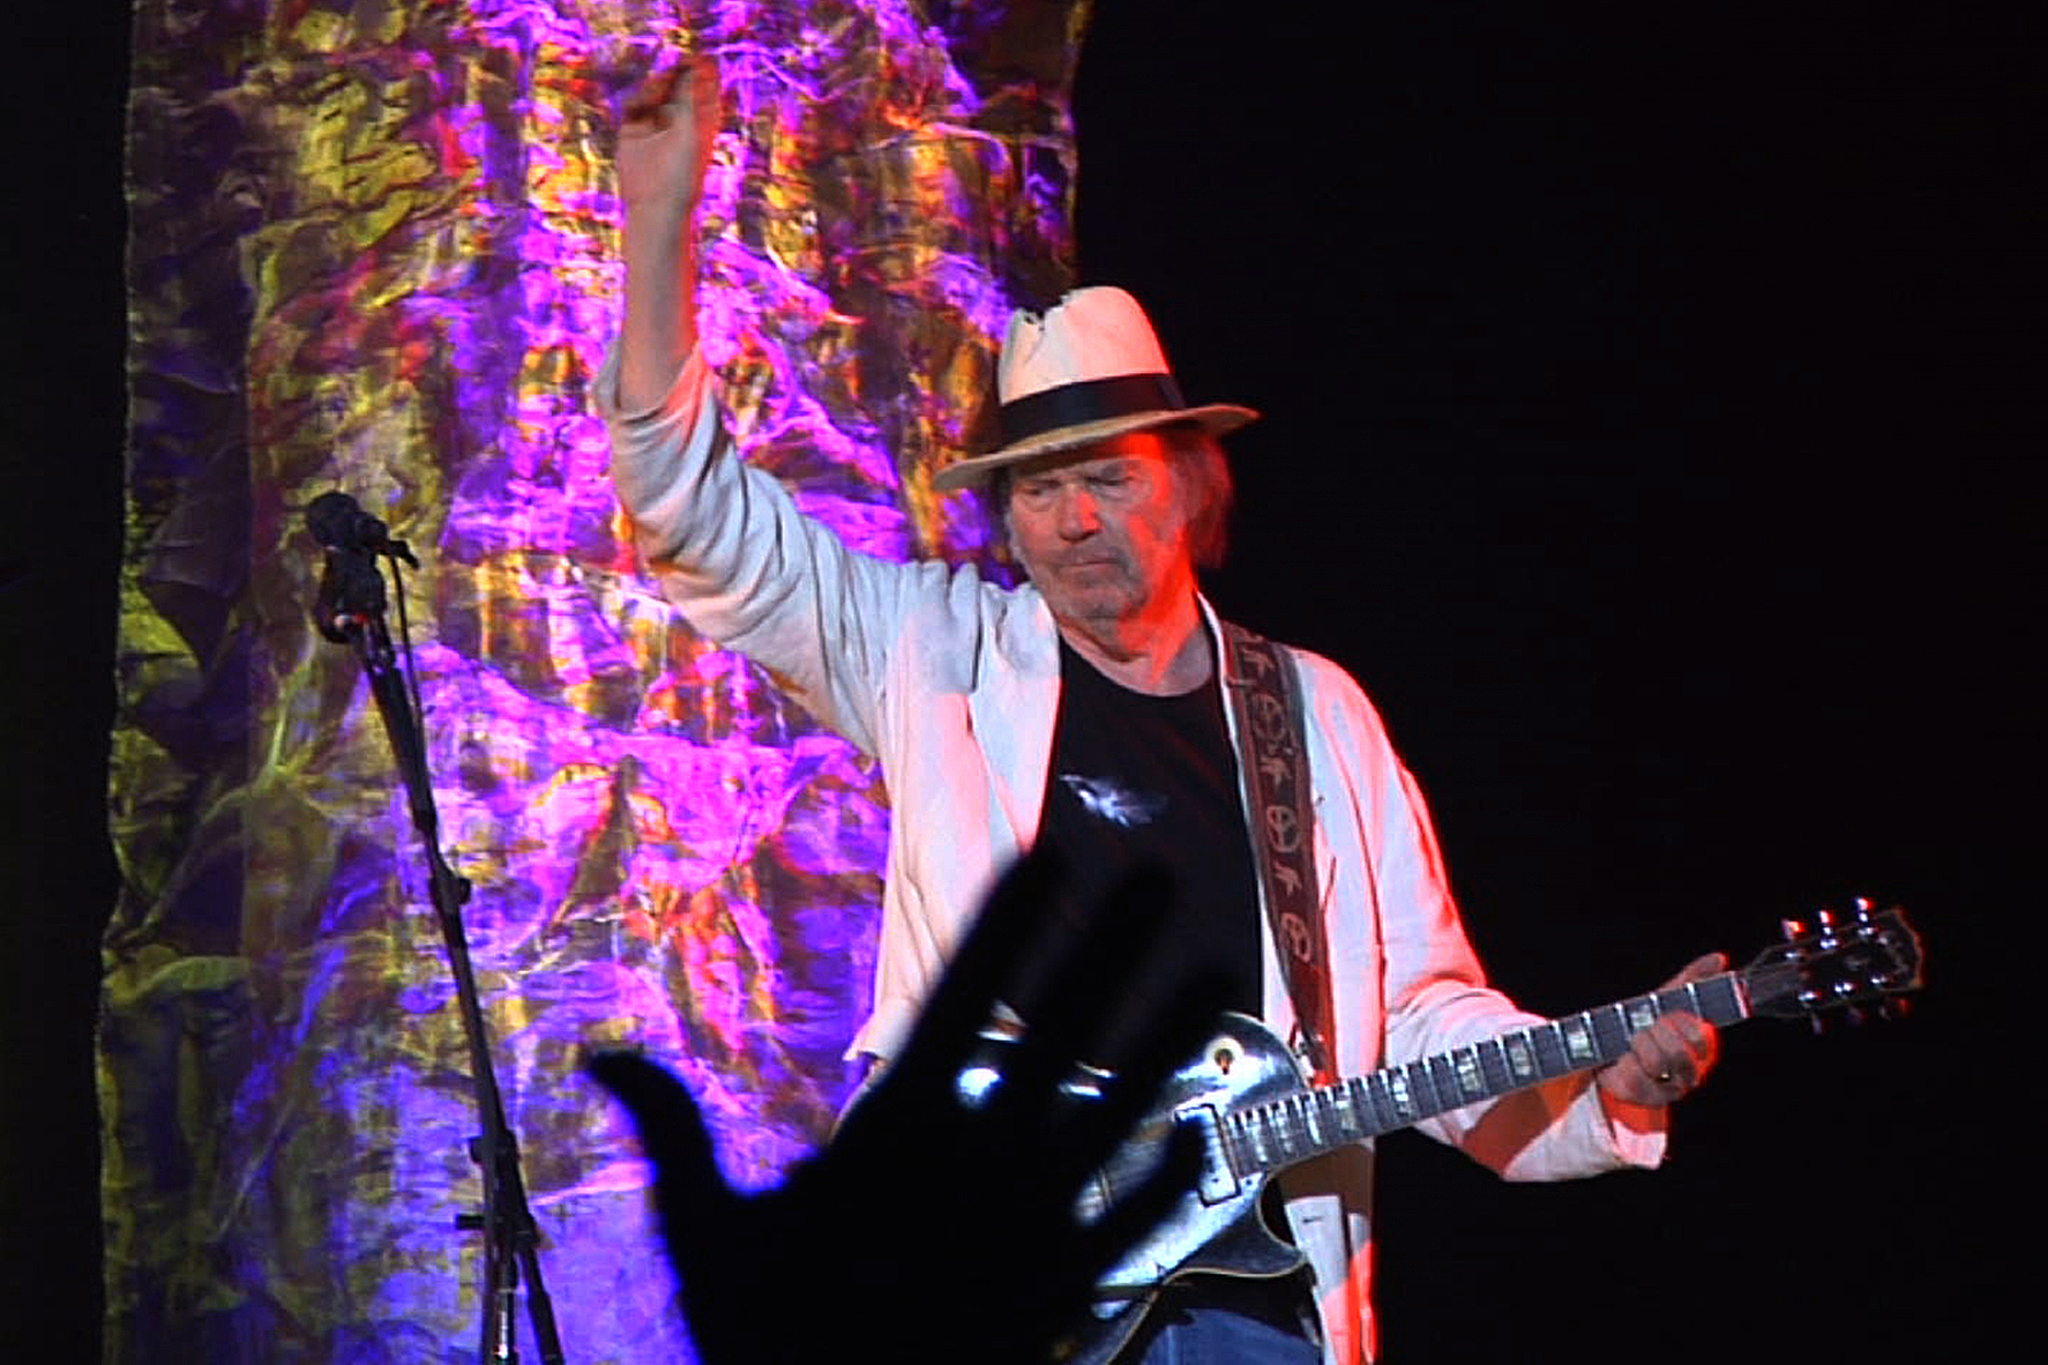 Neil Young performs at Global Festival 2012, one of Time Out's 101 things to do in New York in the fall